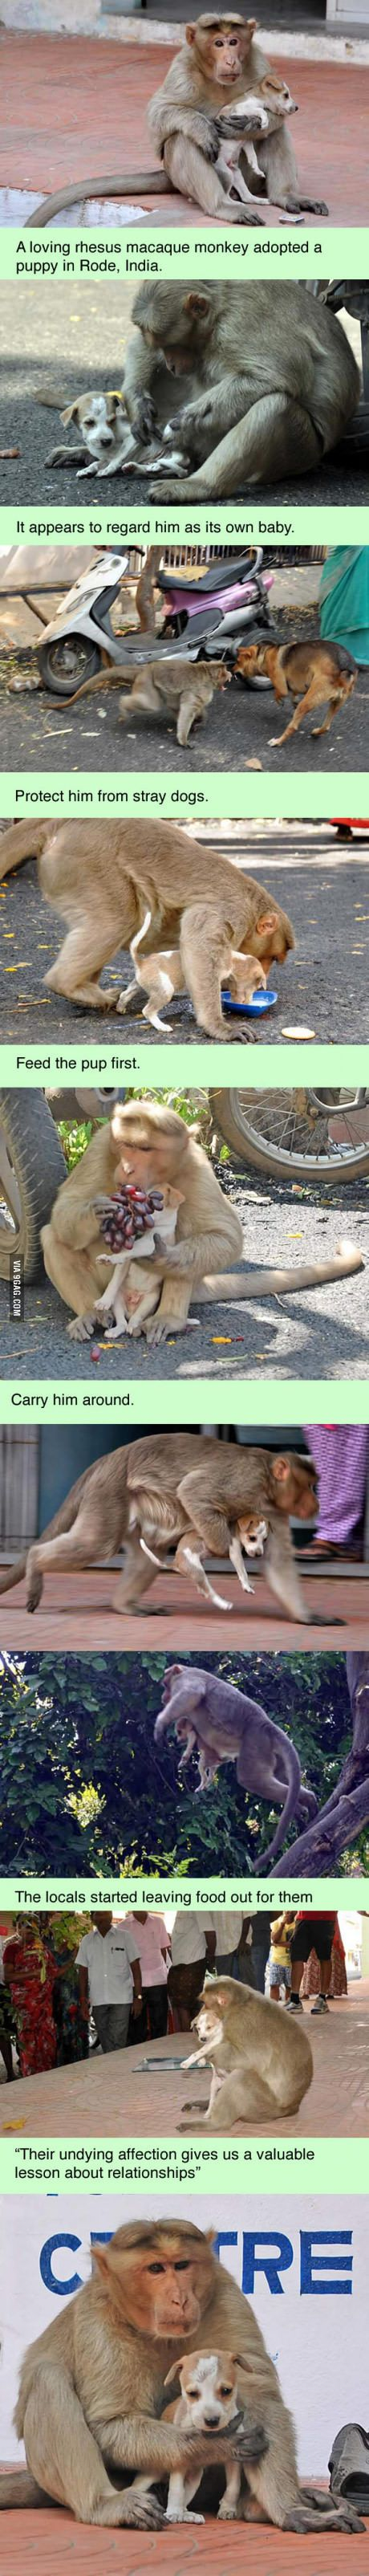 Street monkey adopted a stray puppy